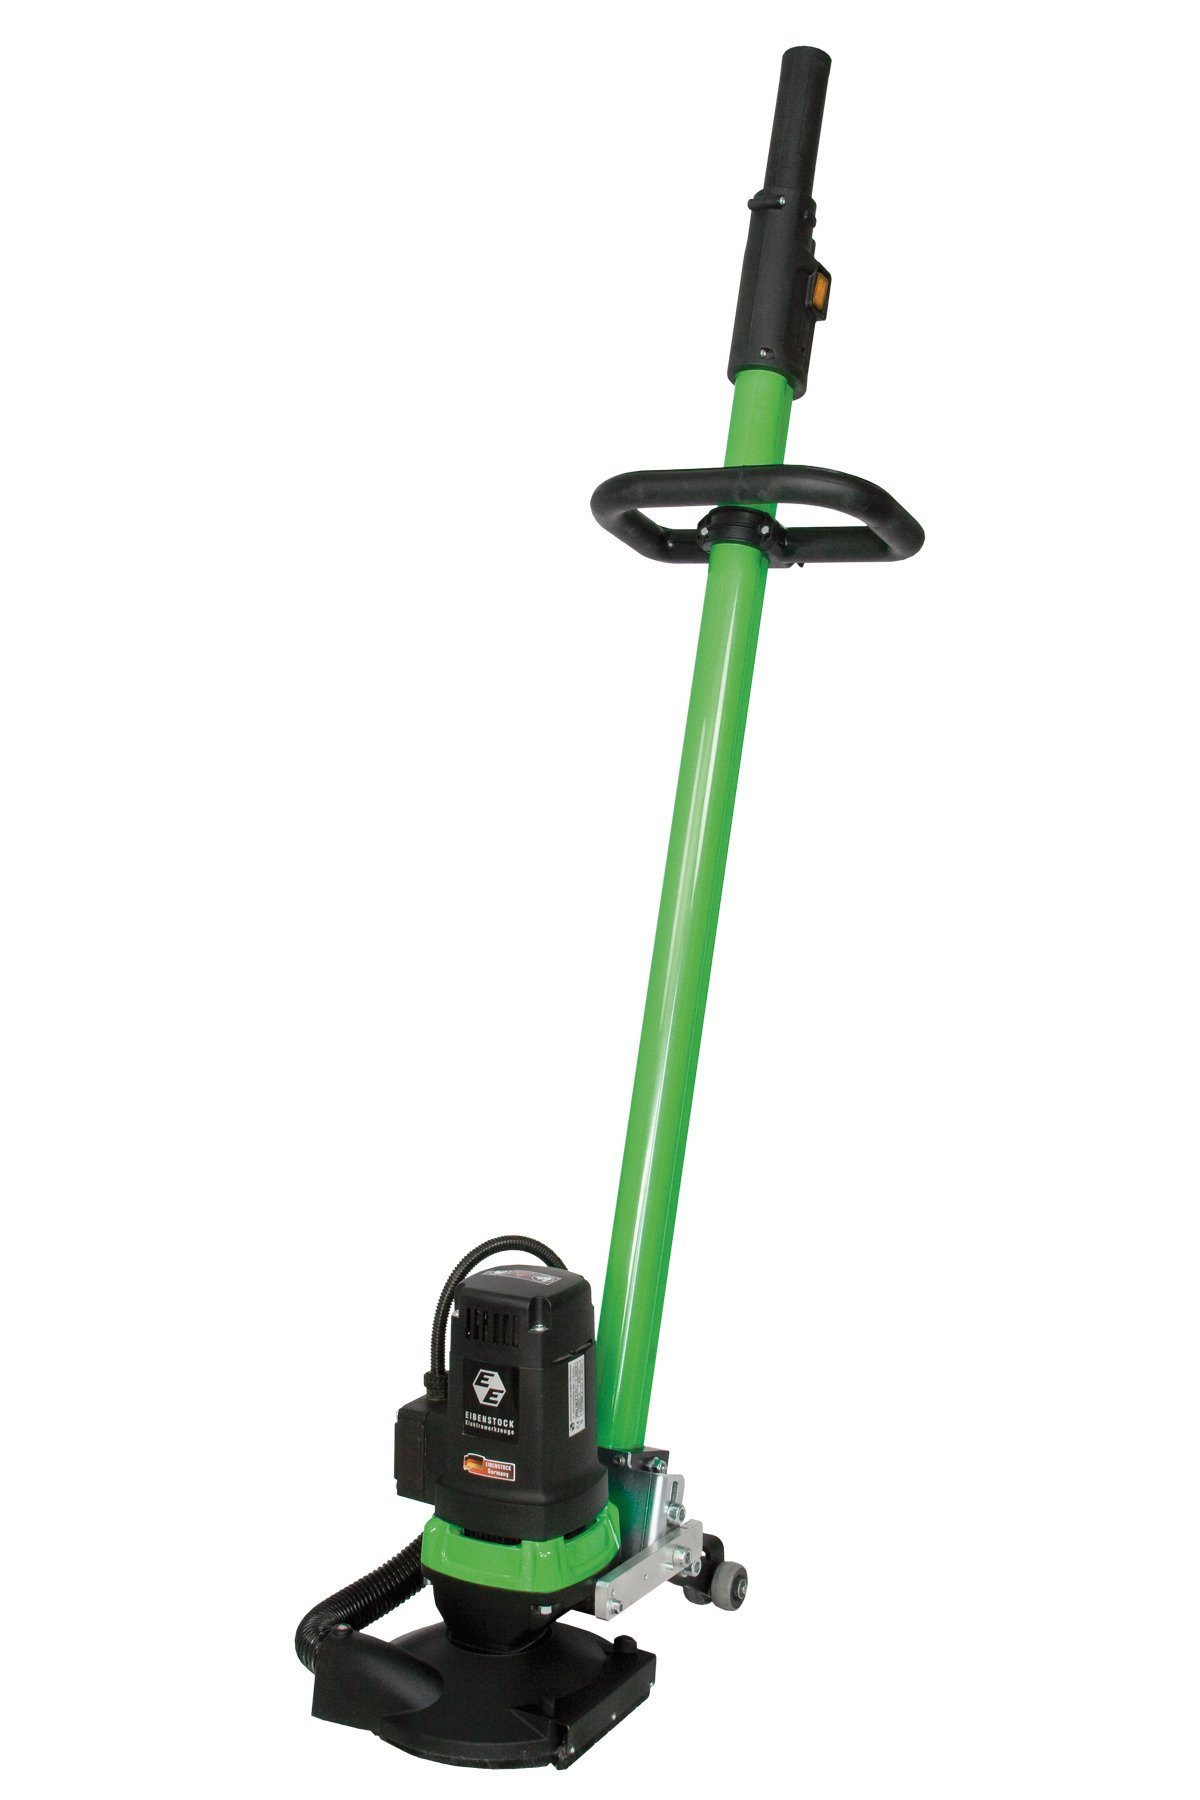 CS Unitec EBS 180 F 7'' Concrete Floor Grinder with Dust Extraction and Angle Adjustable Floor Guide, 20 Amp, 110V